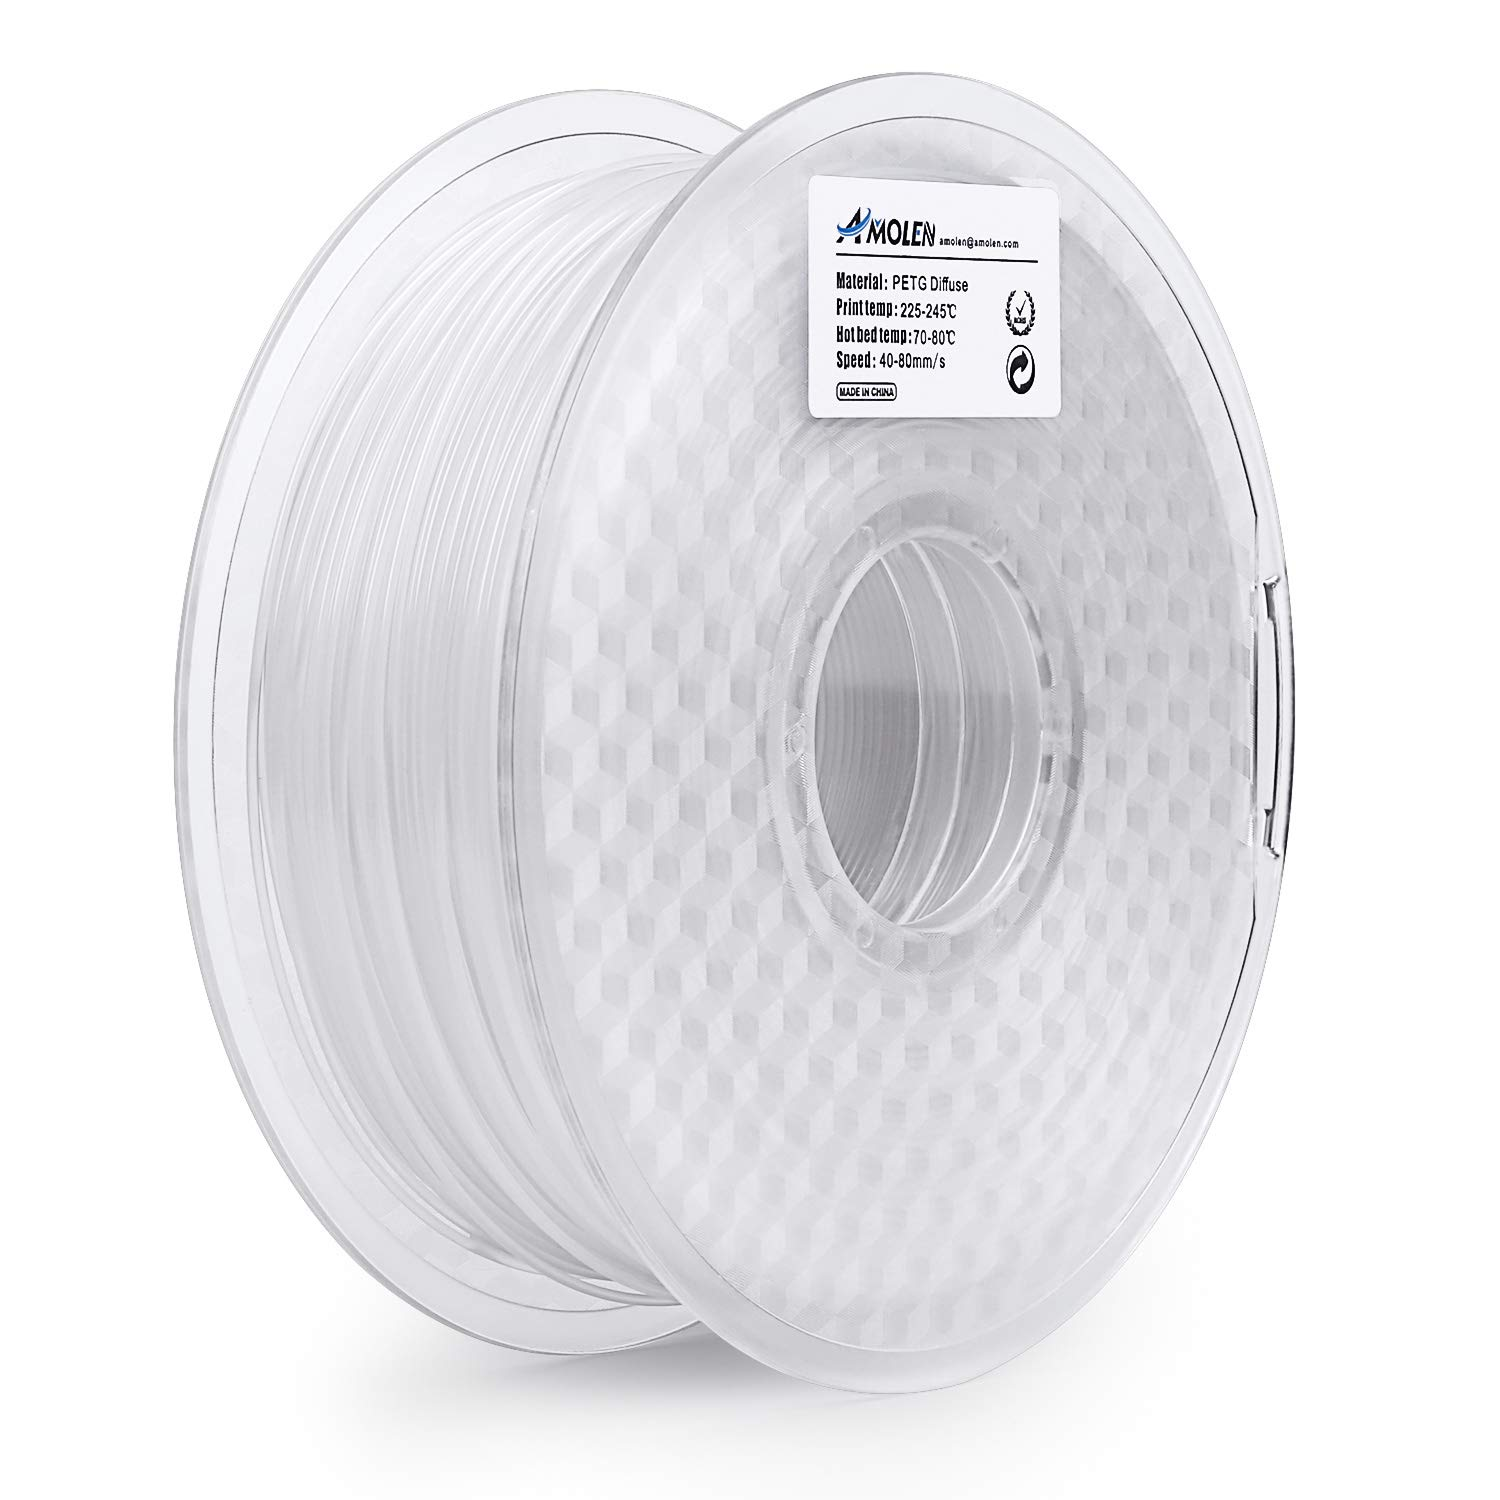 0.5LBS AMOLEN 3D Printer Filament PETG 1.75mm Green +//- 0.03 mm 225g Spool.